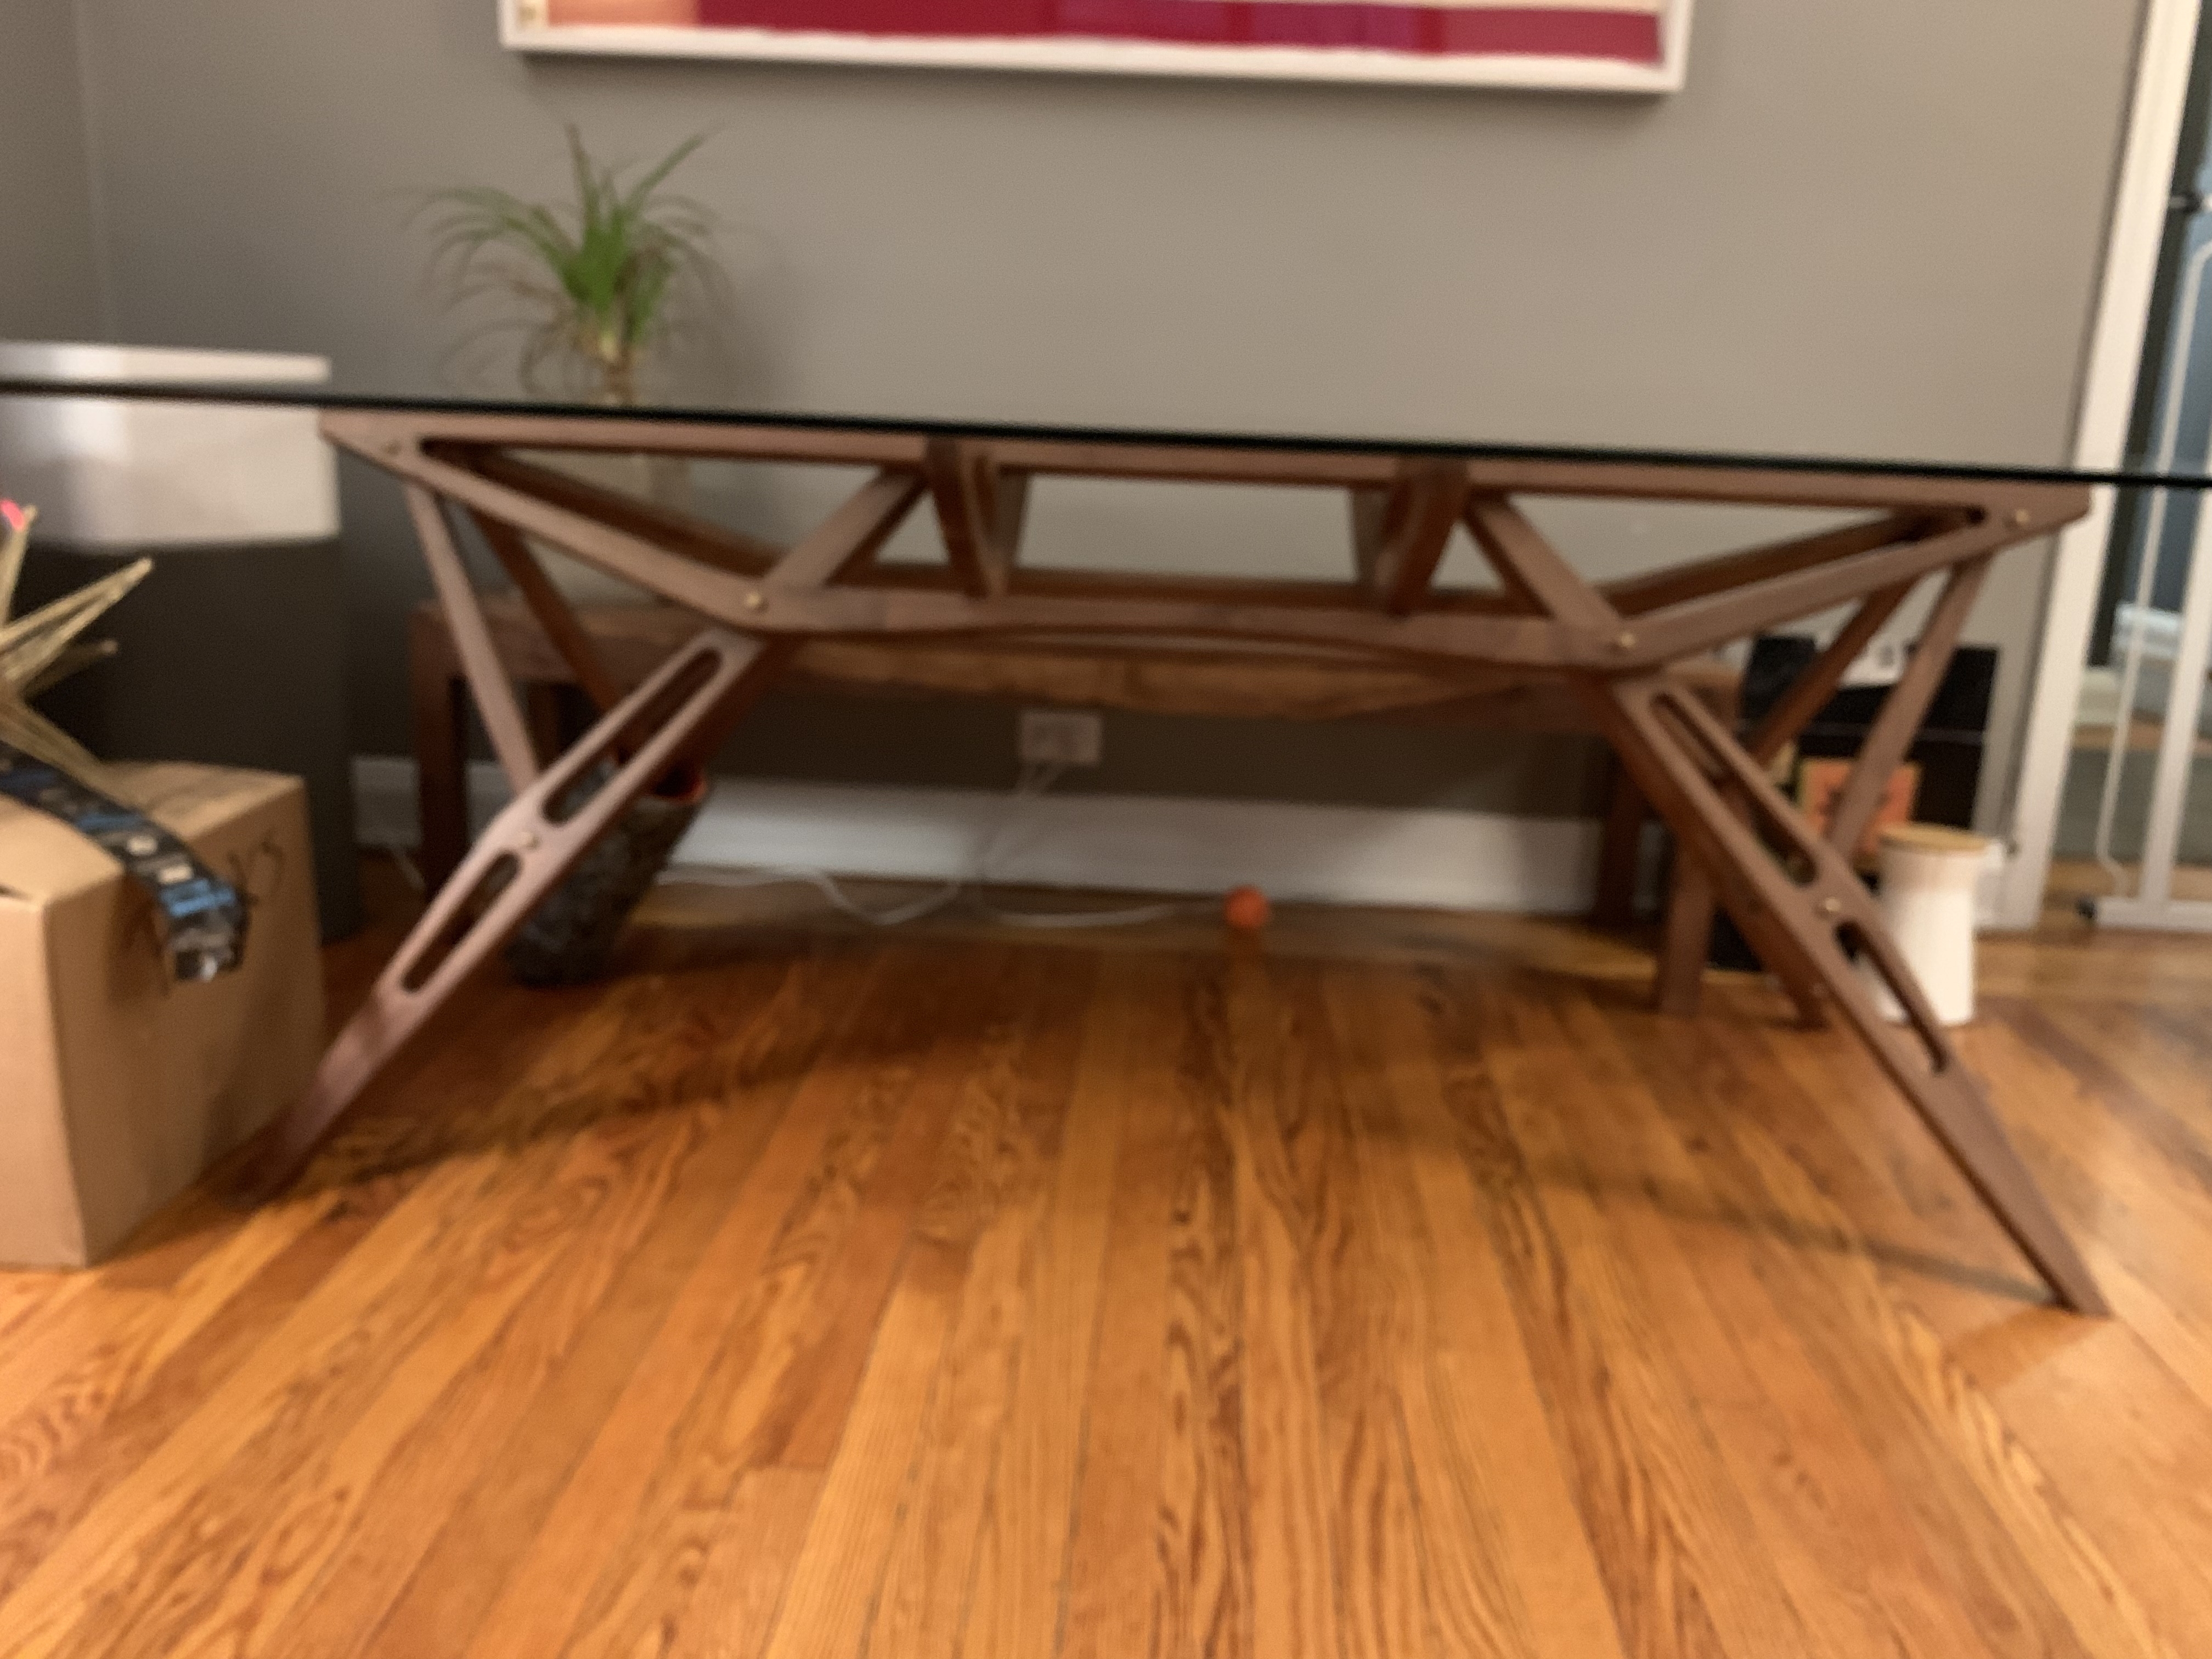 Organic Modernism Amsterdam Dining Table w/ 2 Chairs & Bench